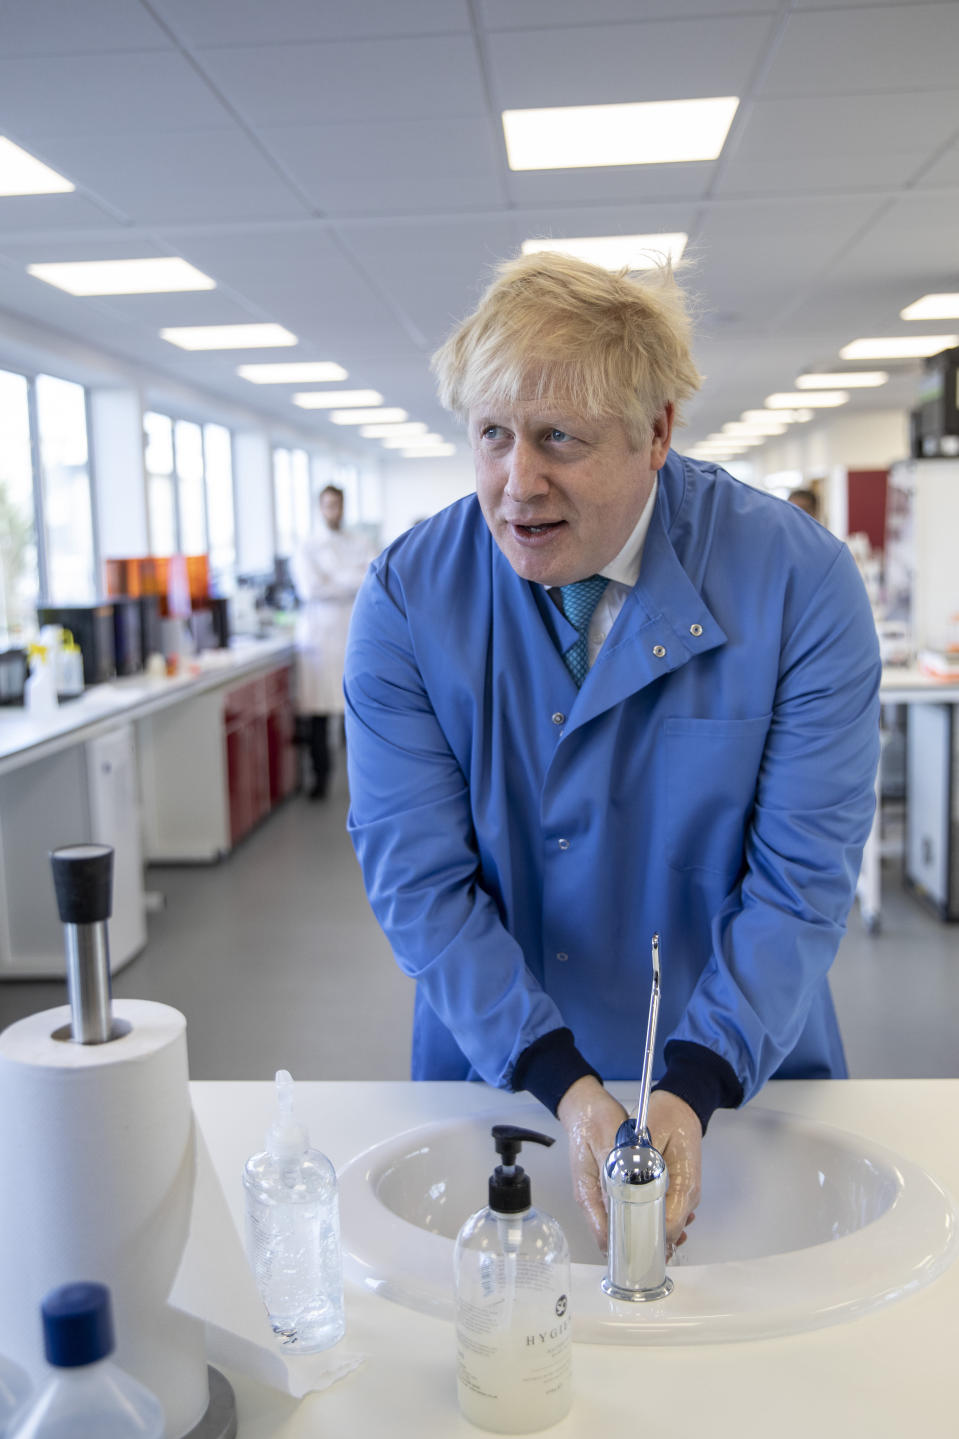 FILE - In this Friday March 6, 2020 file photo Britain's Prime Minister Boris Johnson washes his hands as he visits the Mologic Laboratory in the Bedford technology Park, England. Britain botched its response to the coronavirus the first time around. Now many scientists fear it's about to do it again. The virus is on the rise again in the U.K., which has recorded almost 42,000 COVID-19 deaths, with confirmed infections at their highest level since May. (Jack Hill/Pool via AP, File)